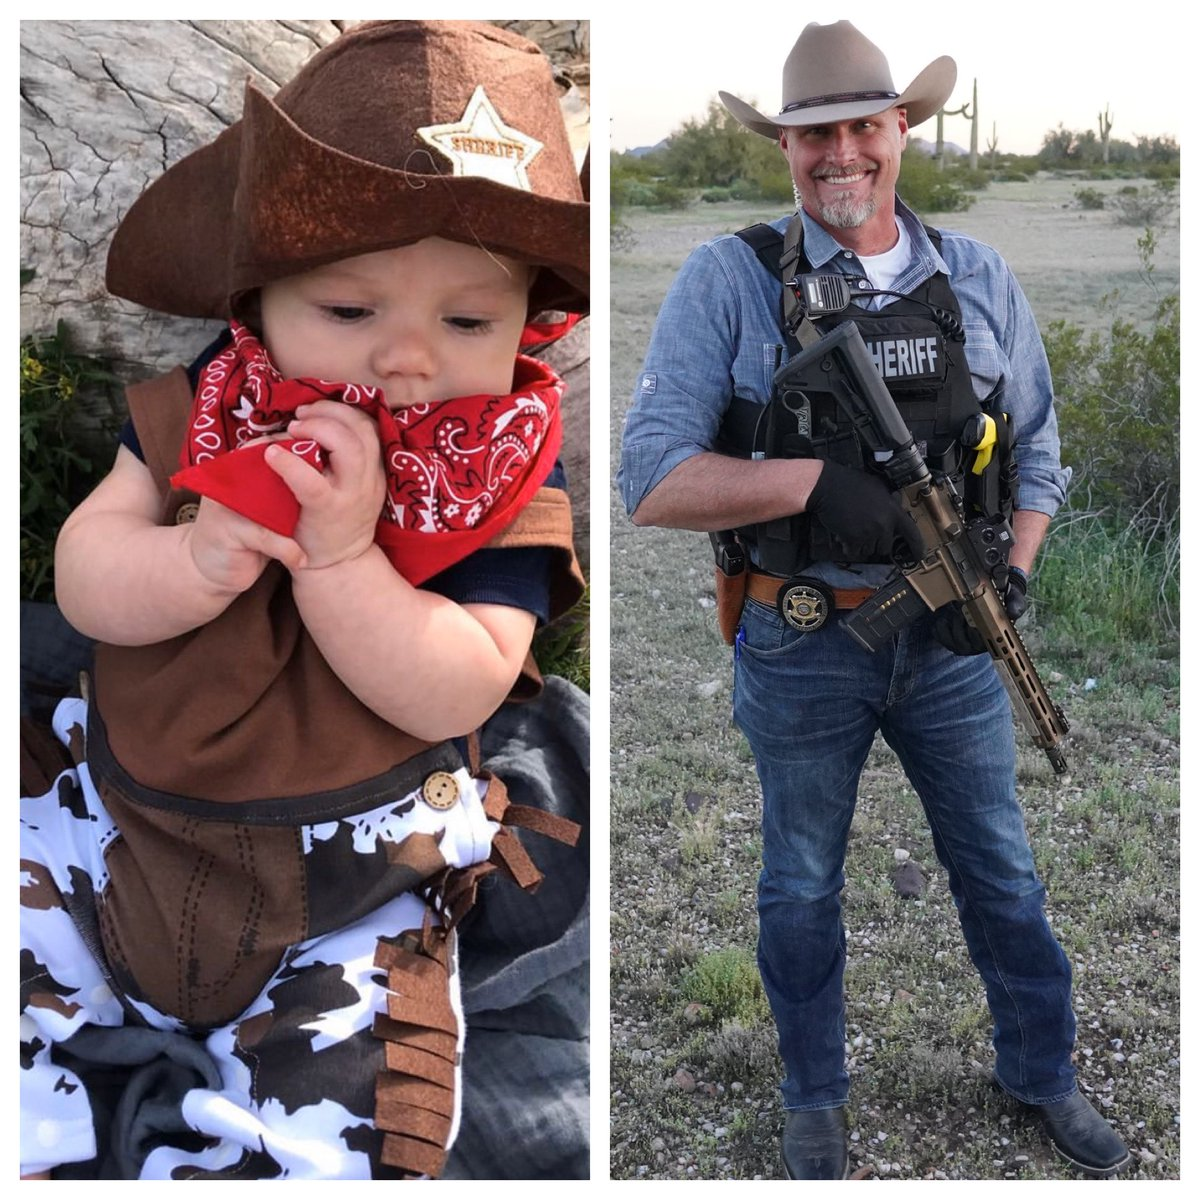 Okay, I am probably going to lose this one but who wore it better? My grandson Brody or me? I even added the gun to give me more of an even playing field with him. Hahaha!!  . #whoworeitbetter #meorhim #isayhim  #proudgrandpa #family #60DaysIn #sherifflamb #LivePD#LivePDWanted